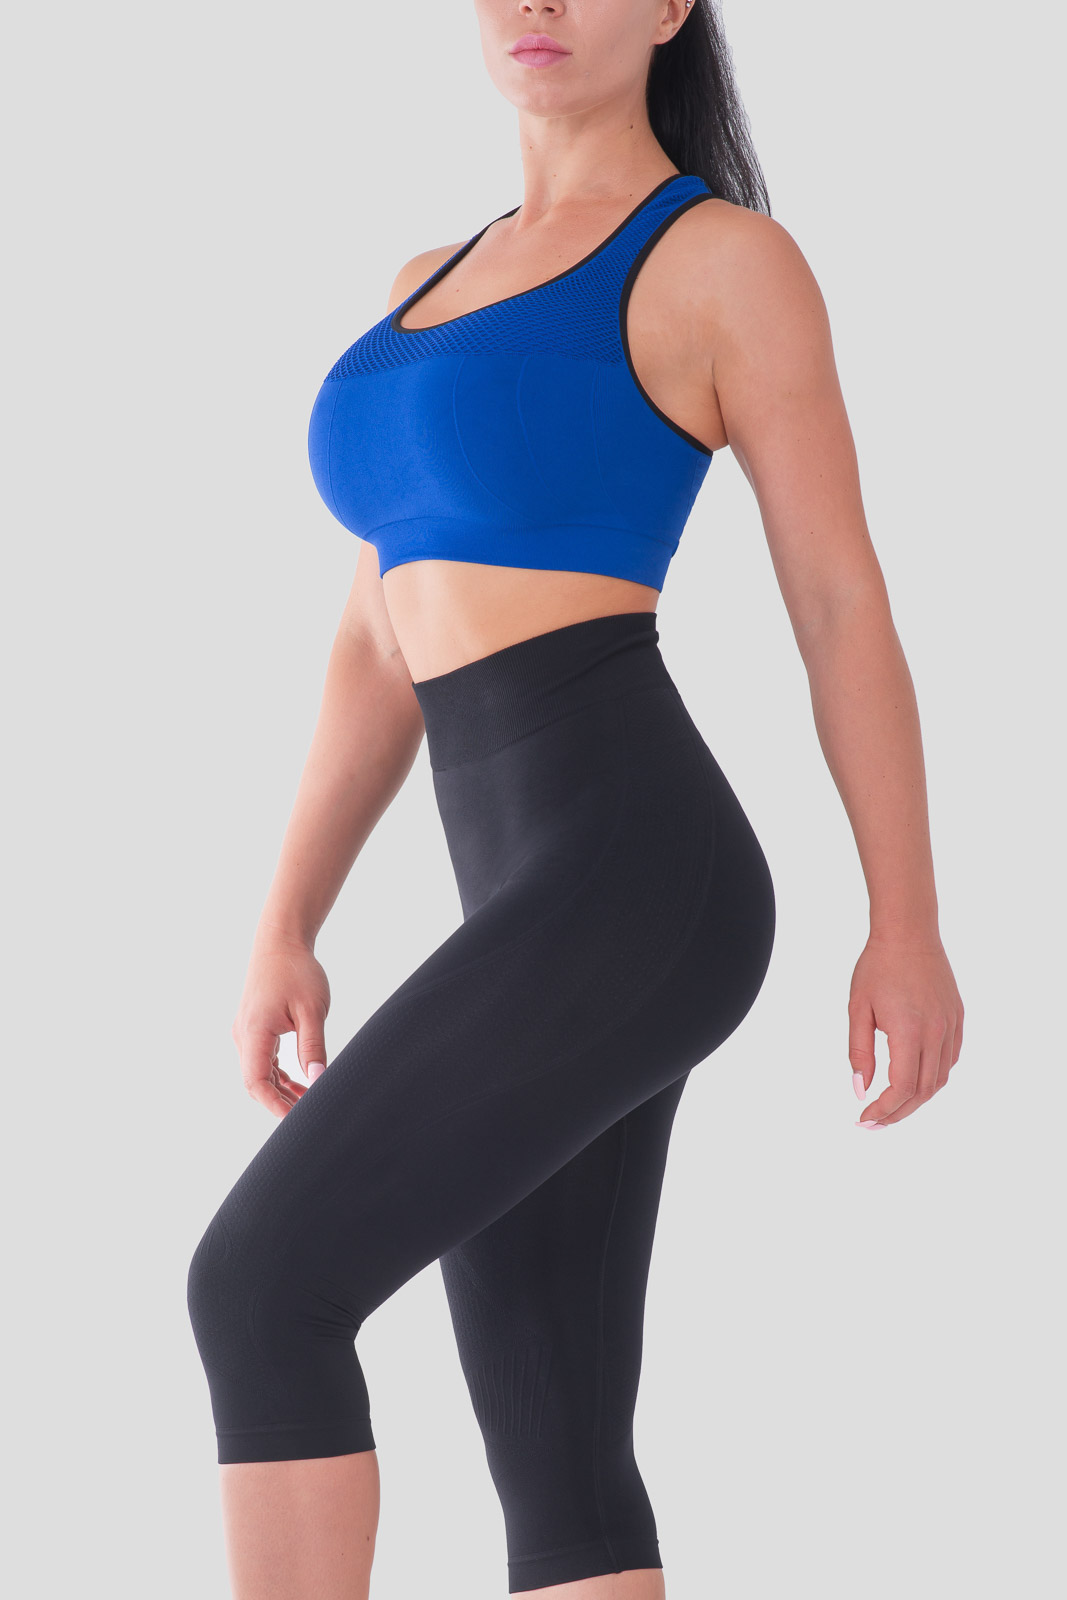 Bellissima-Women-039-s-Capri-Yoga-Pants-Seamless-High-Waisted-Workout-Leggings thumbnail 10